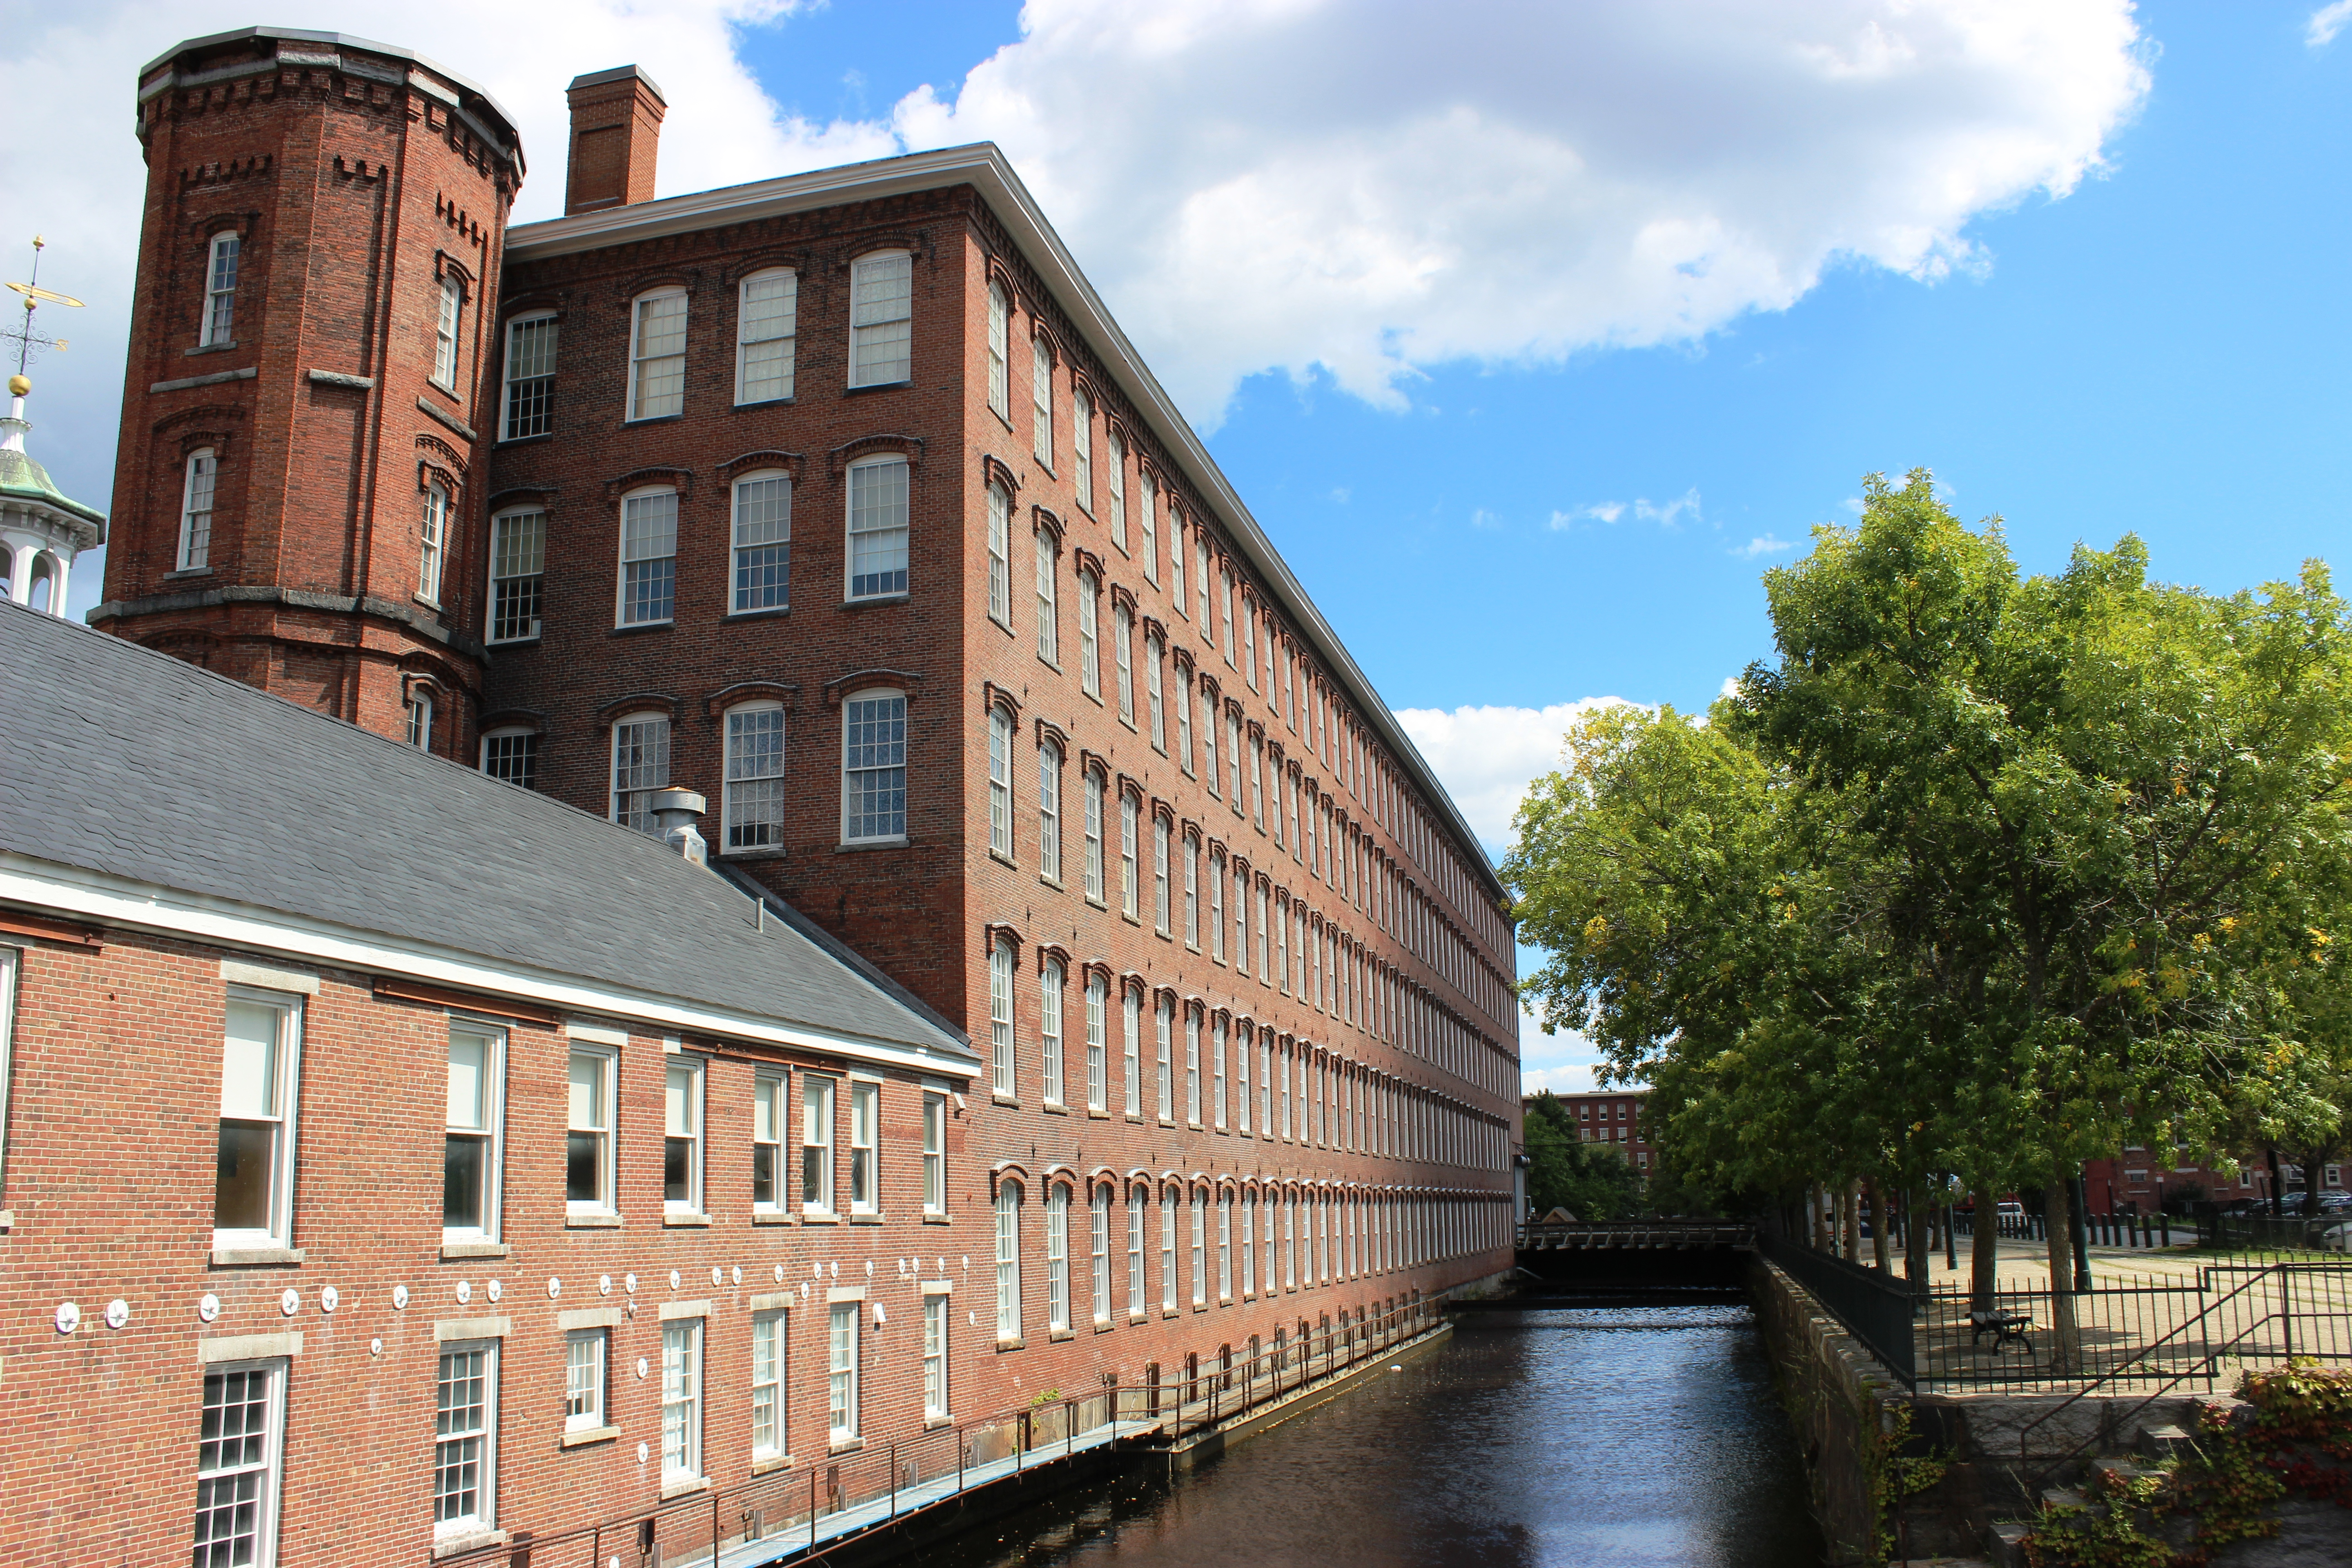 mill building by canal